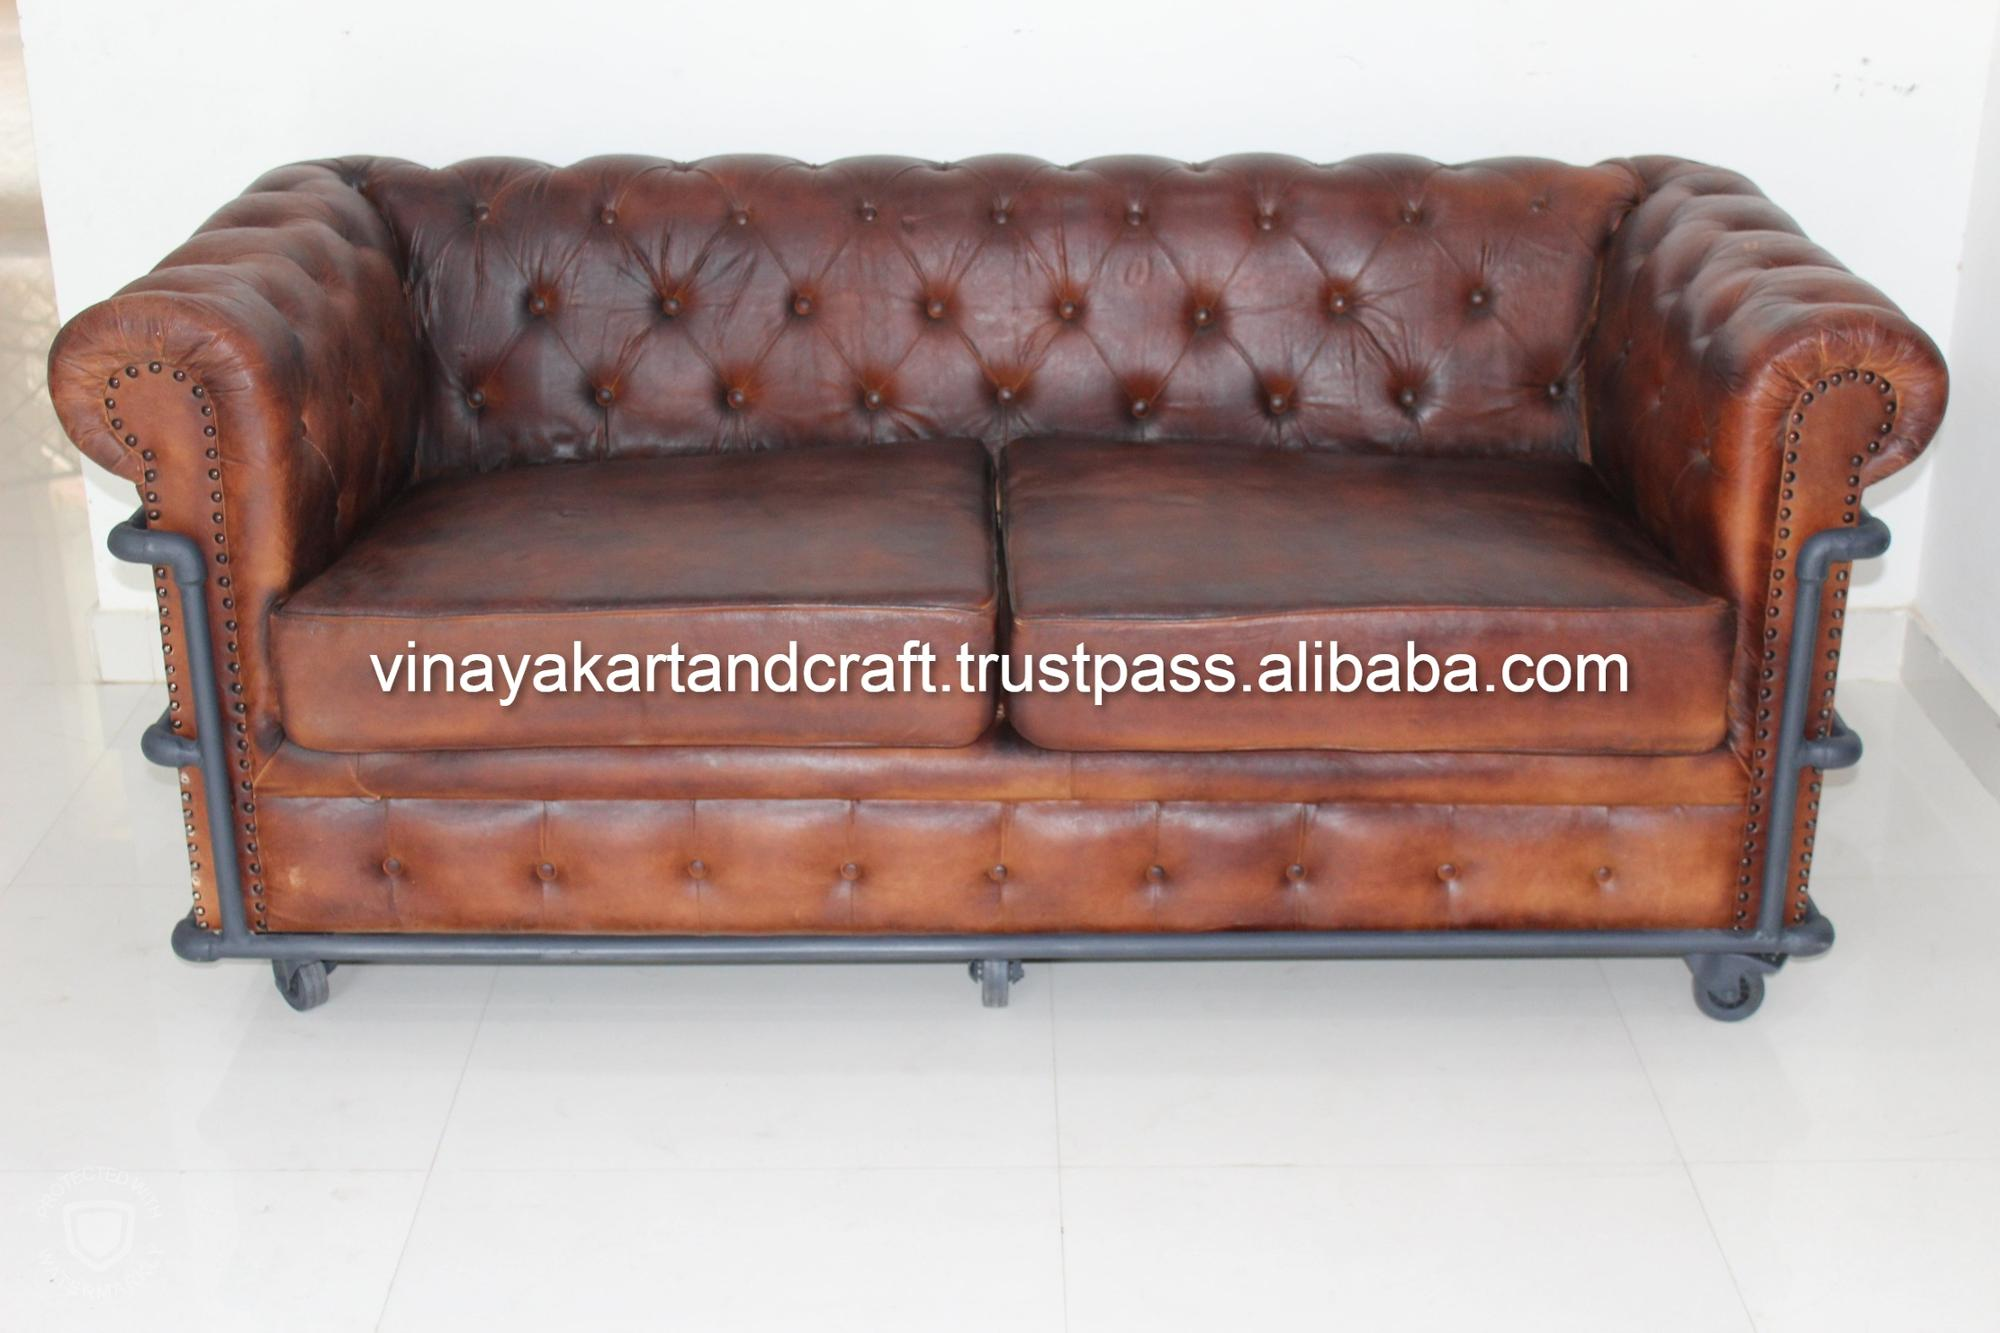 Vintage Leather Sofa Jodhpur